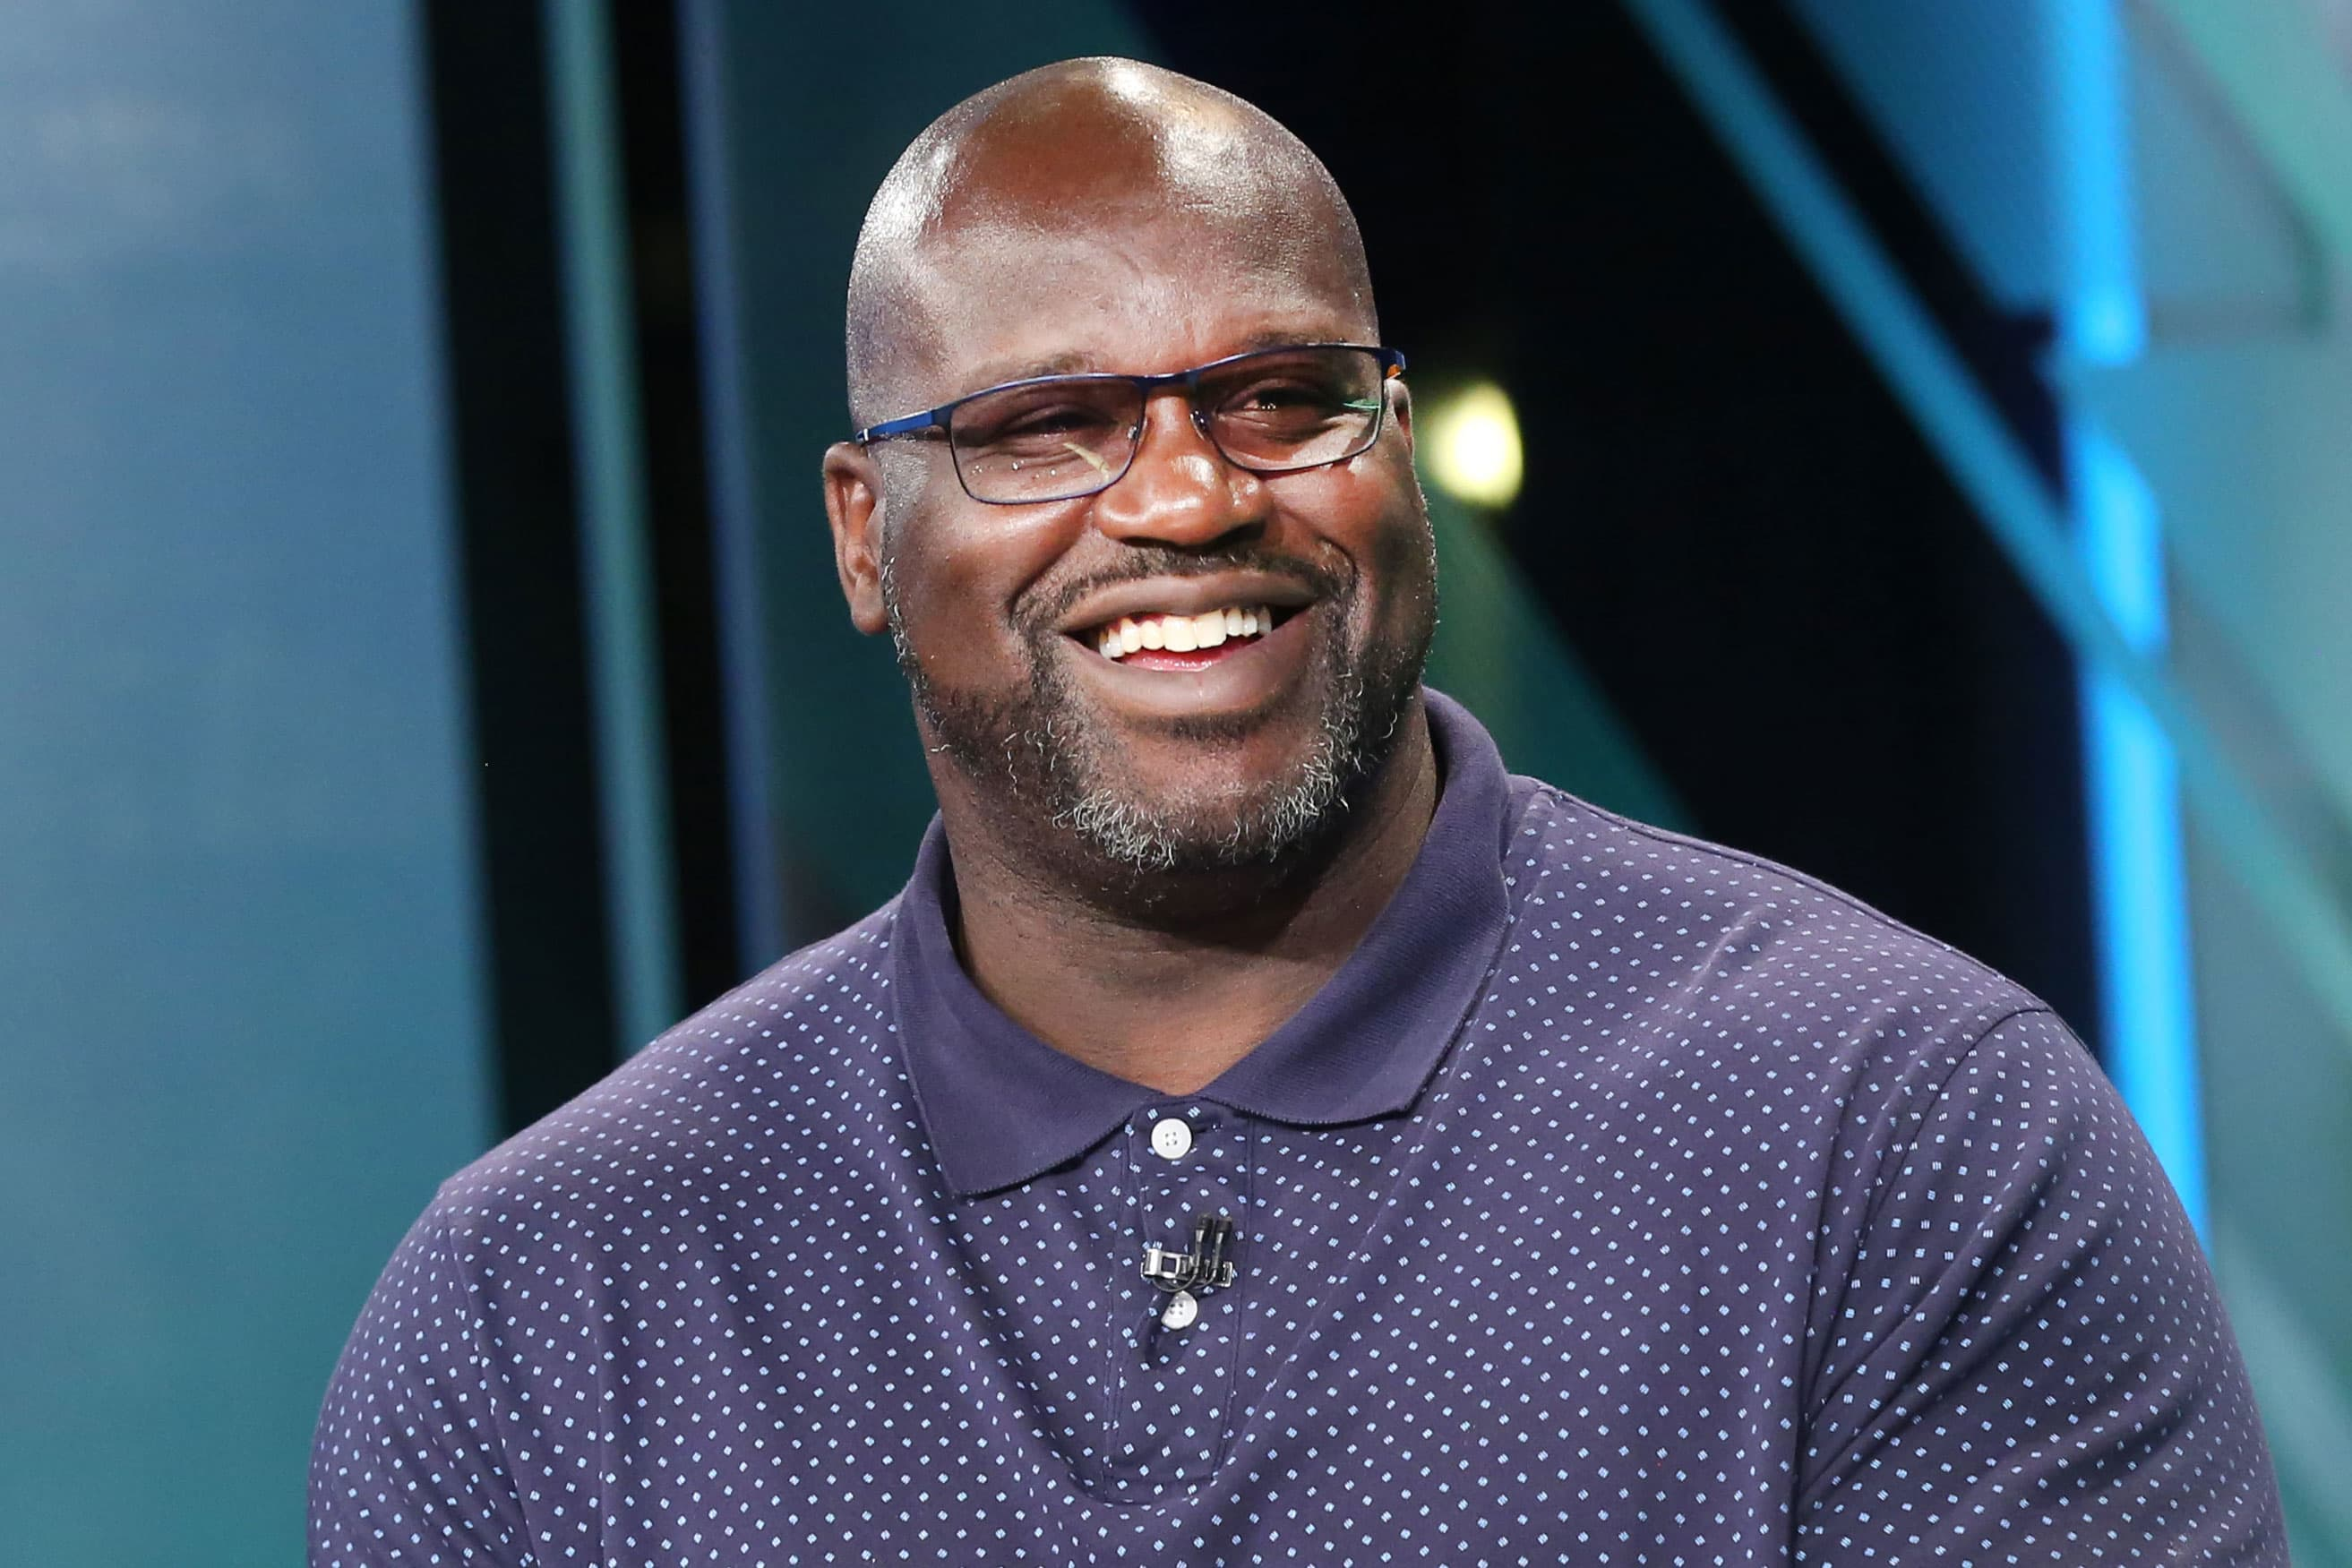 Shaq: 'I don't invest in companies just to try and get the big hit'